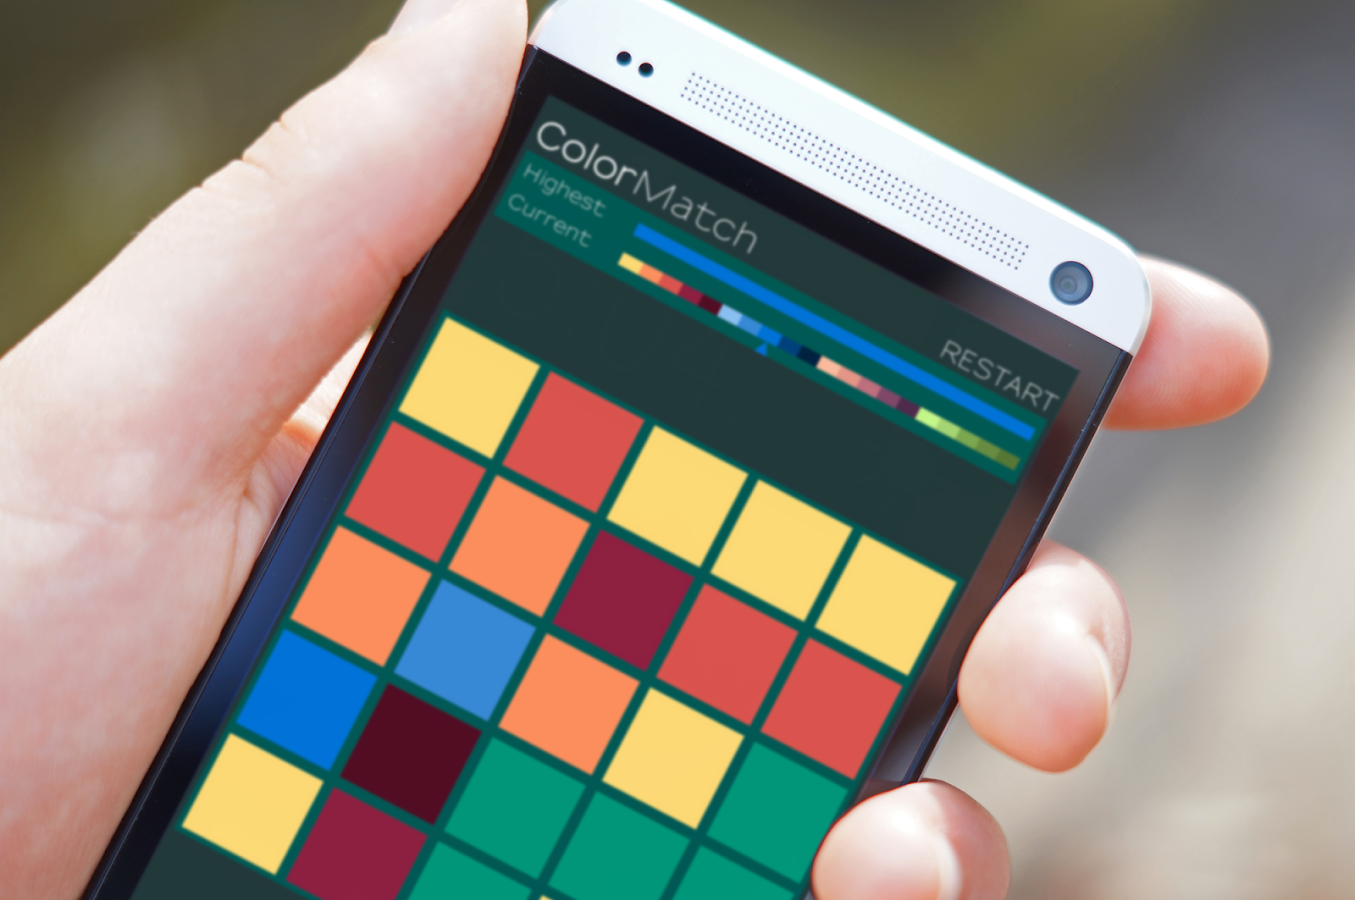 Color Match - Download | Install Android Apps | Cafe Bazaar